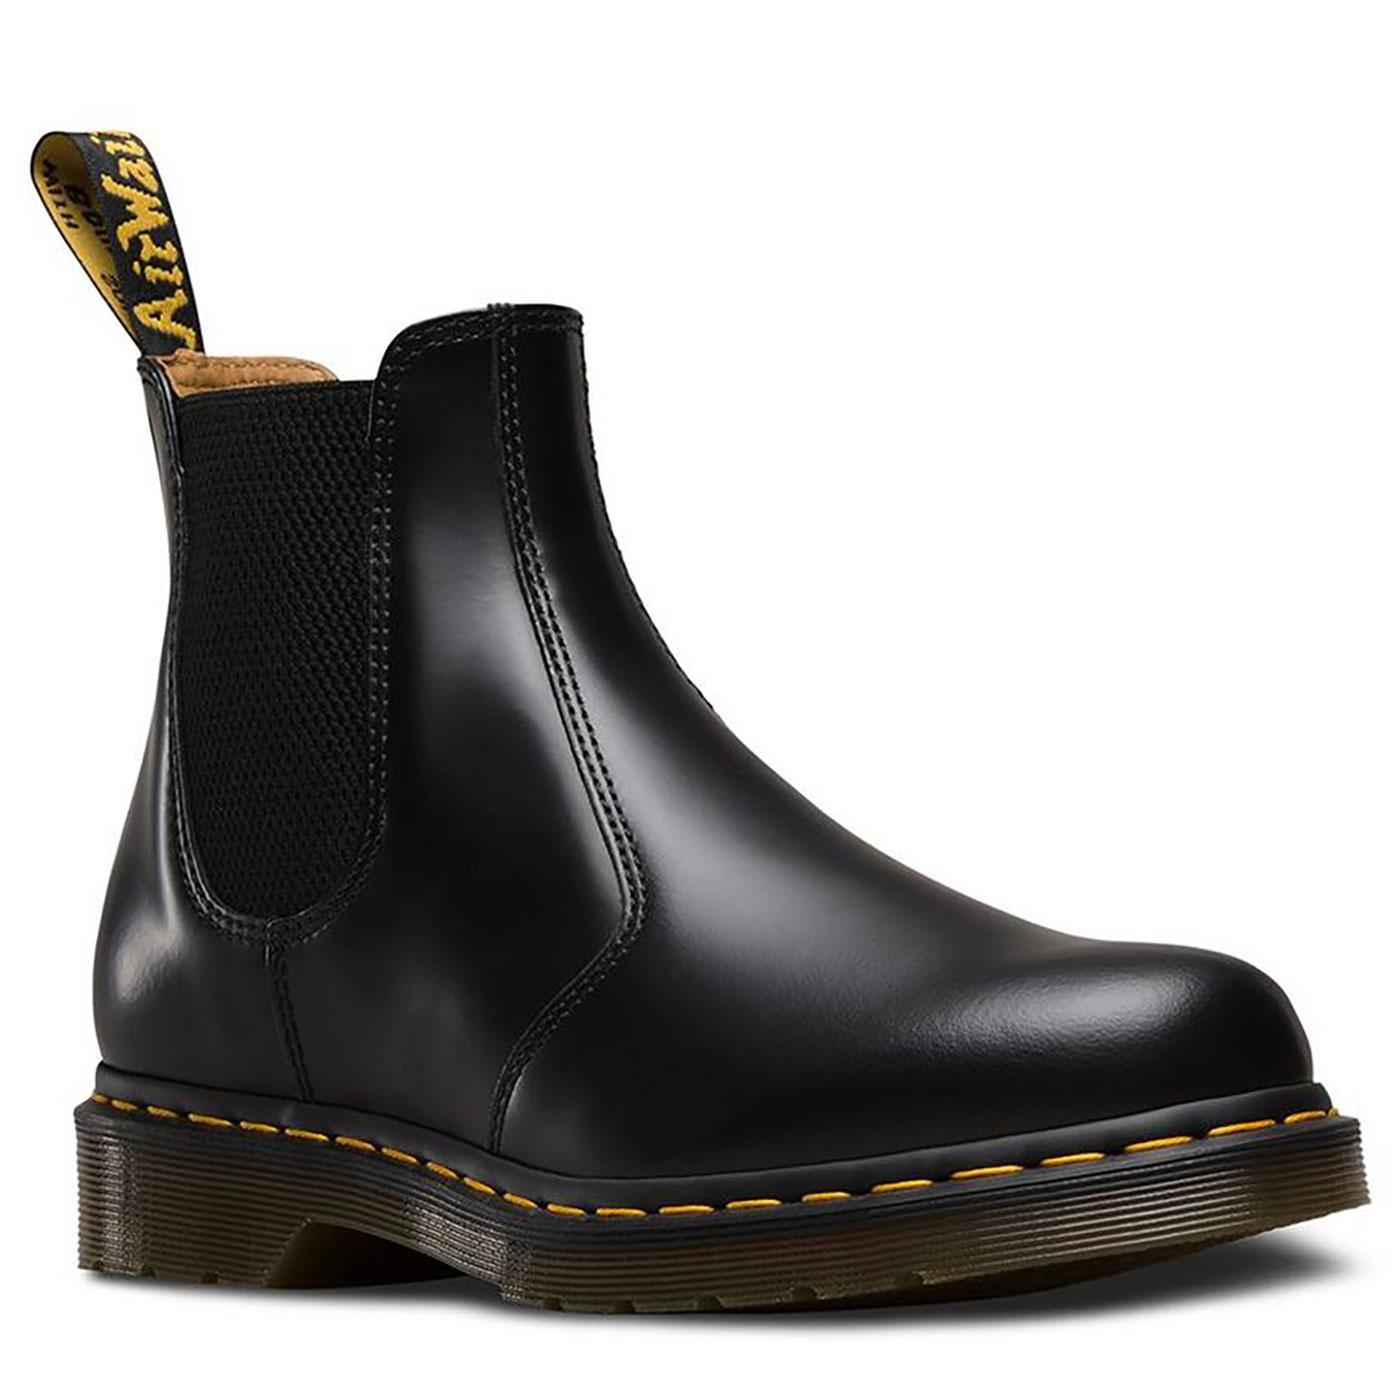 2976 YS DR MARTENS Womens Leather Chelsea Boots